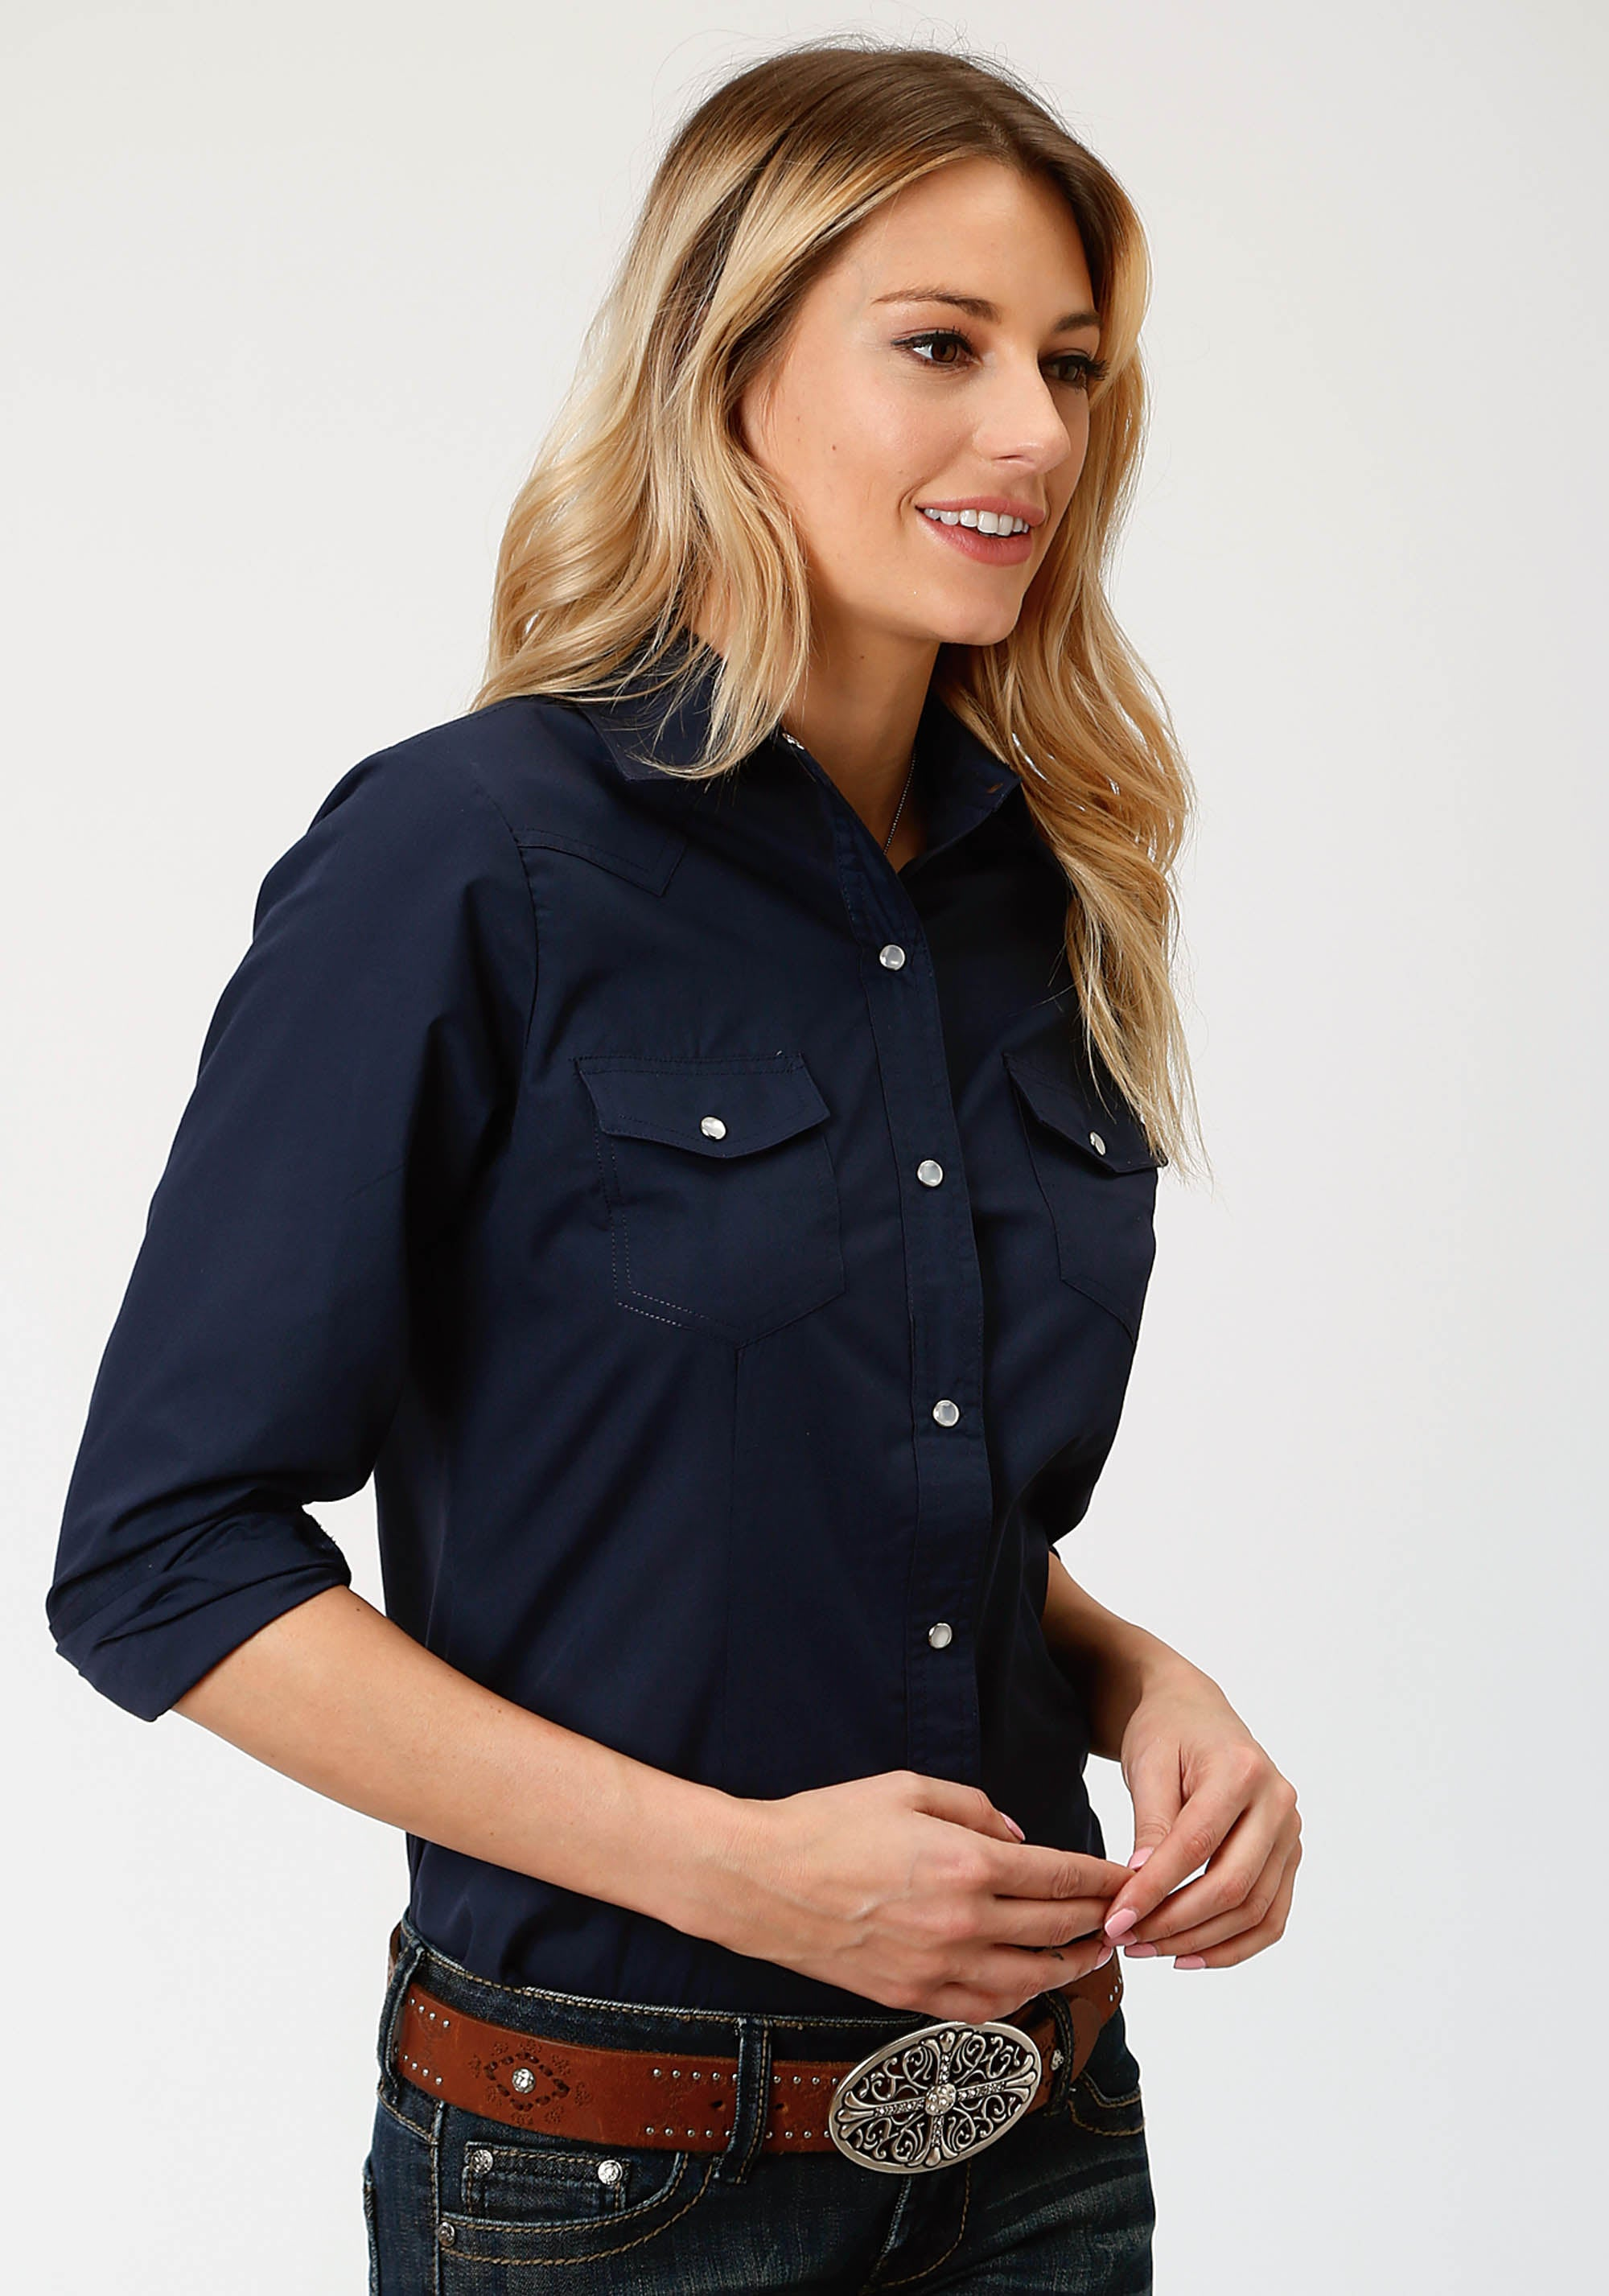 ROPER WOMENS BLUE 9837 SOLID BROADCLOTH - NAVY IN-STOCK LONG SLEEVE